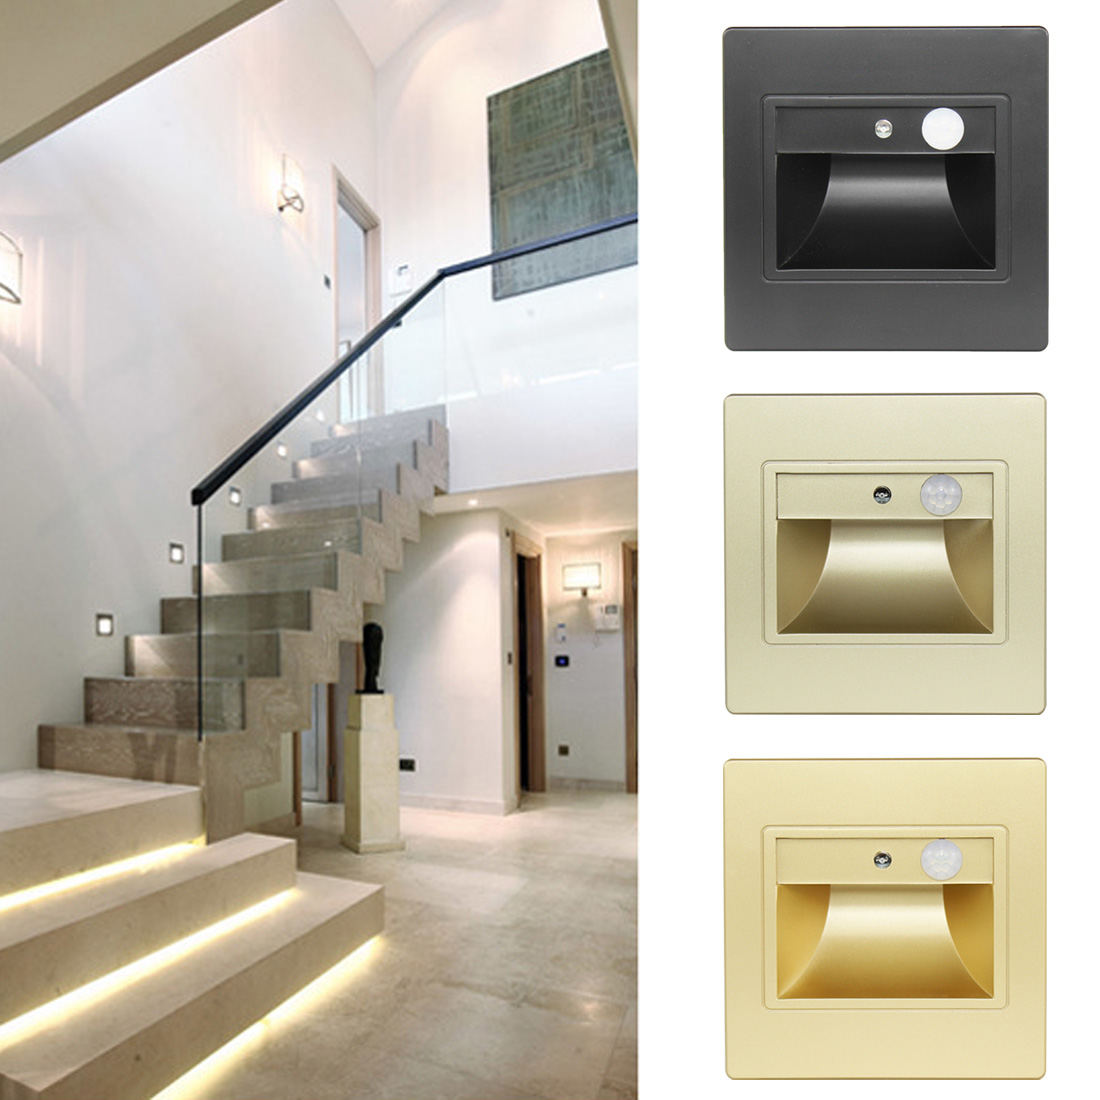 86 Type Motion Detector+ Light Sensor LED Stair Light LED Infrared Human Body Induction Lamp Recessed Steps Ladder Wall Lamp